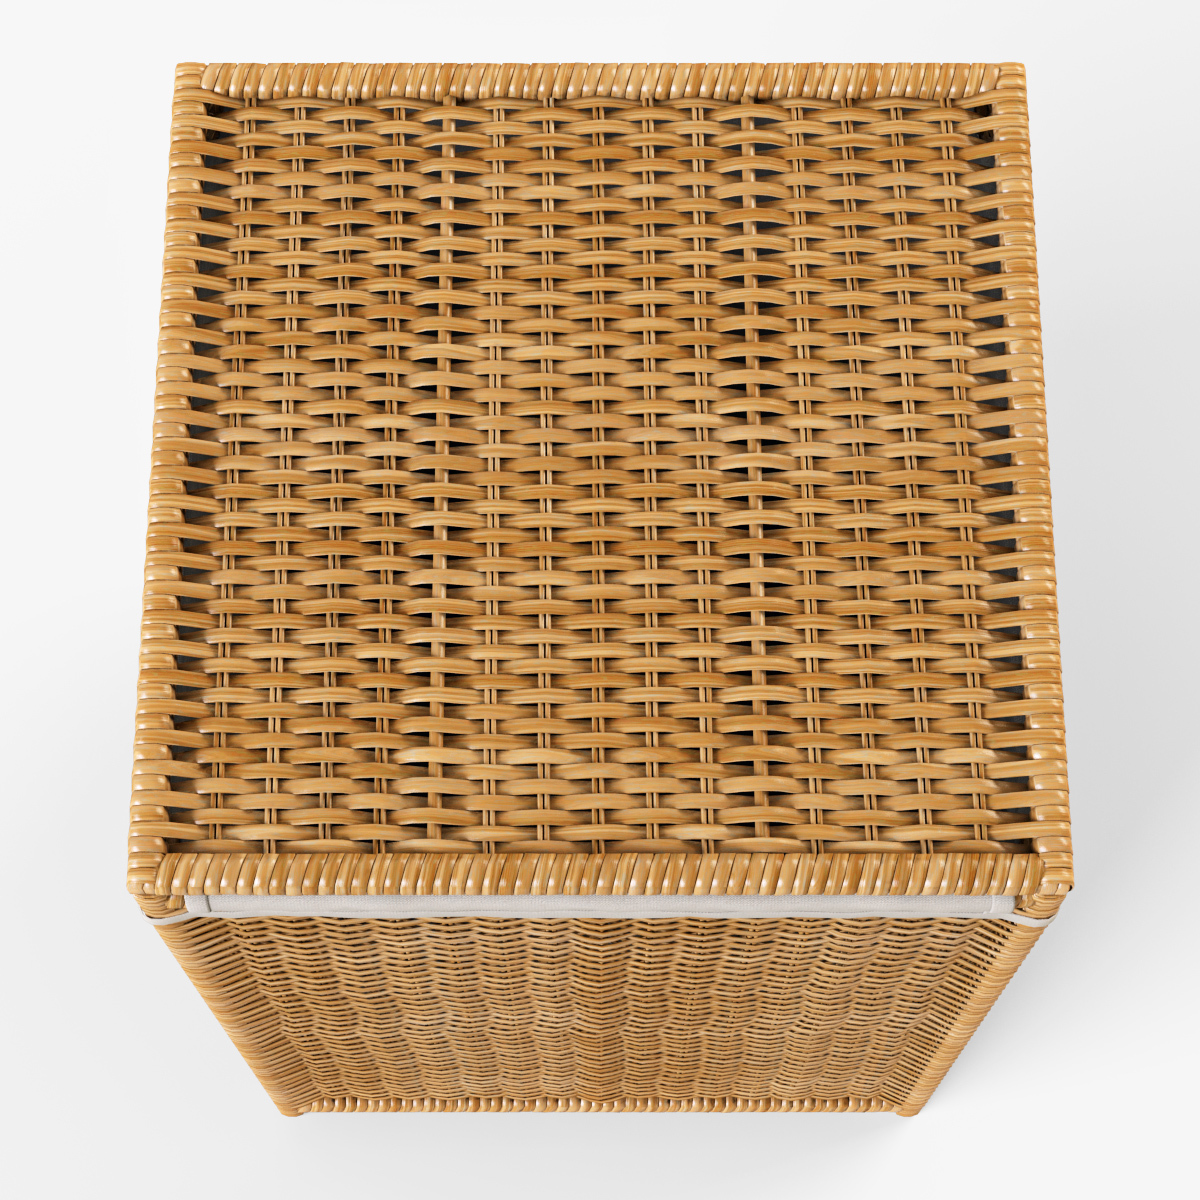 Laundry Basket Ikea Branas   3DOcean Item for Sale  01 preview jpg  02 preview jpg 03 preview jpg 04 preview jpg. Laundry Basket Ikea Branas by Markelos   3DOcean